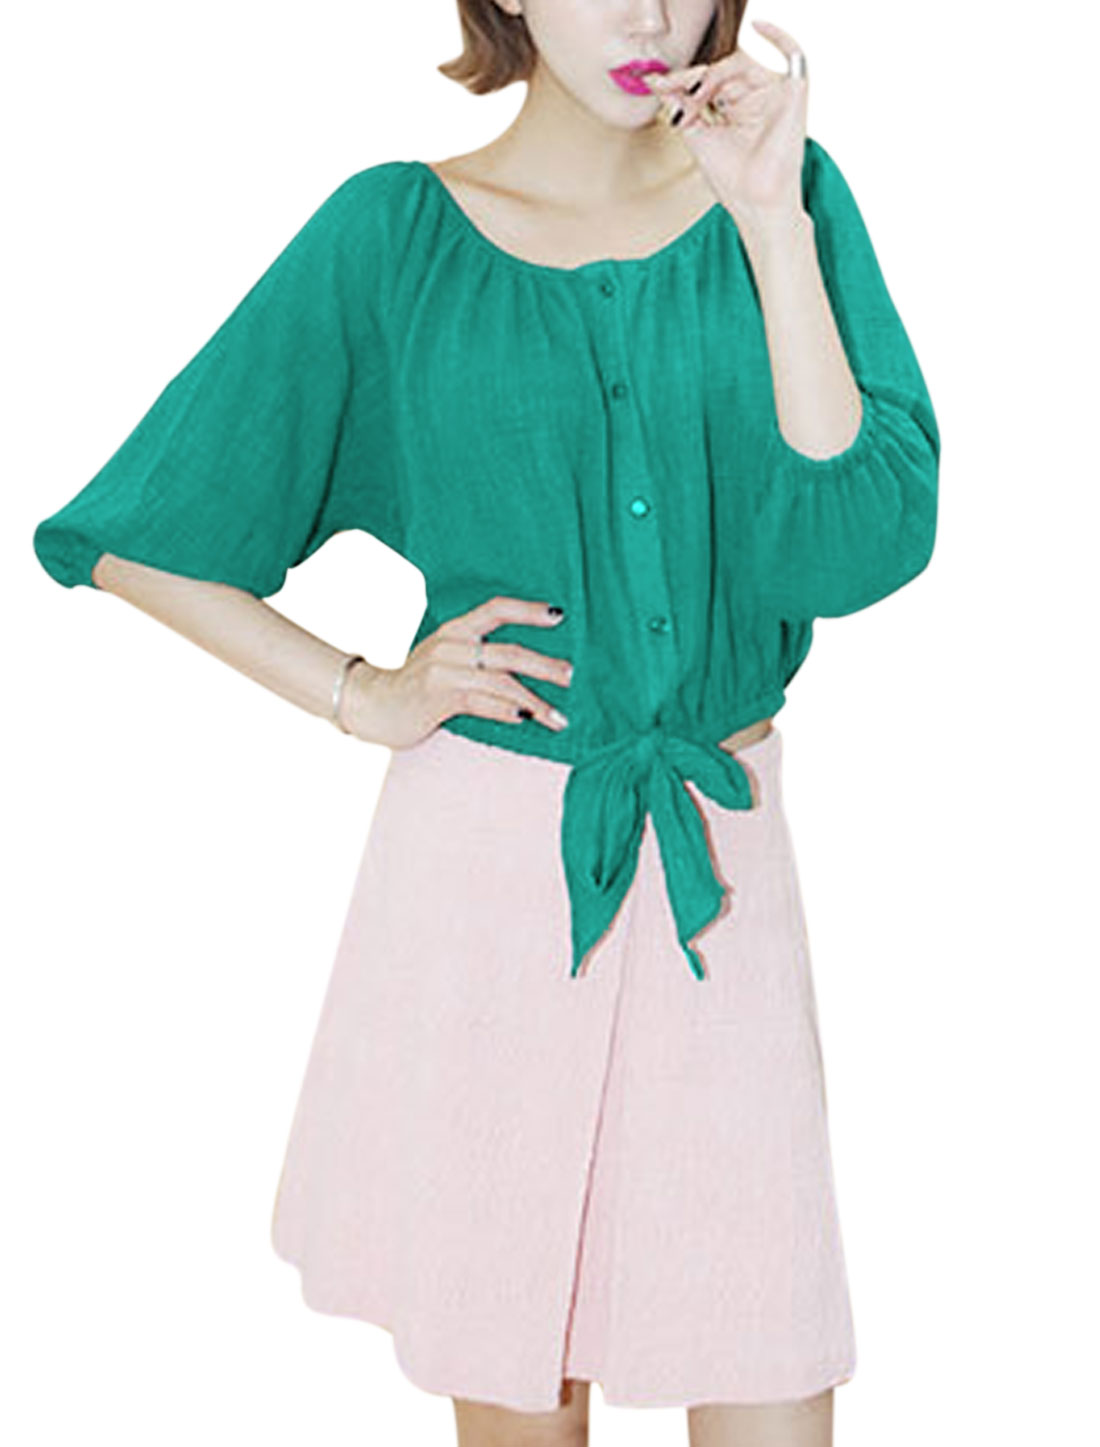 Women 3/4 Raglan Sleeves Button-Front Bow-tie Hem Leisure Top Dark Green M